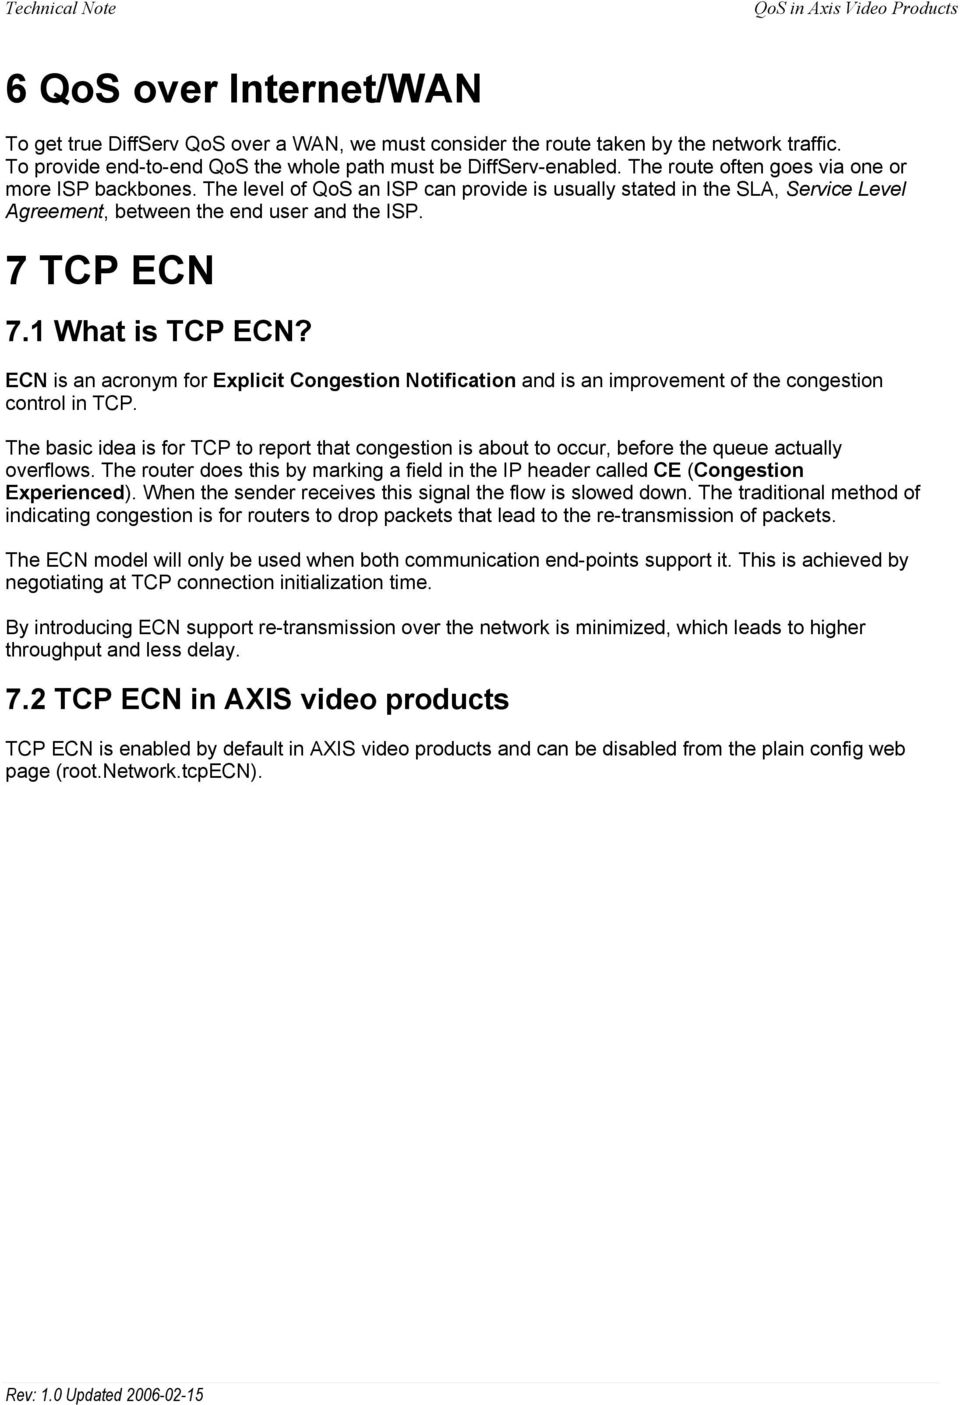 1 What is TCP ECN? ECN is an acronym for Explicit Congestion Notification and is an improvement of the congestion control in TCP.